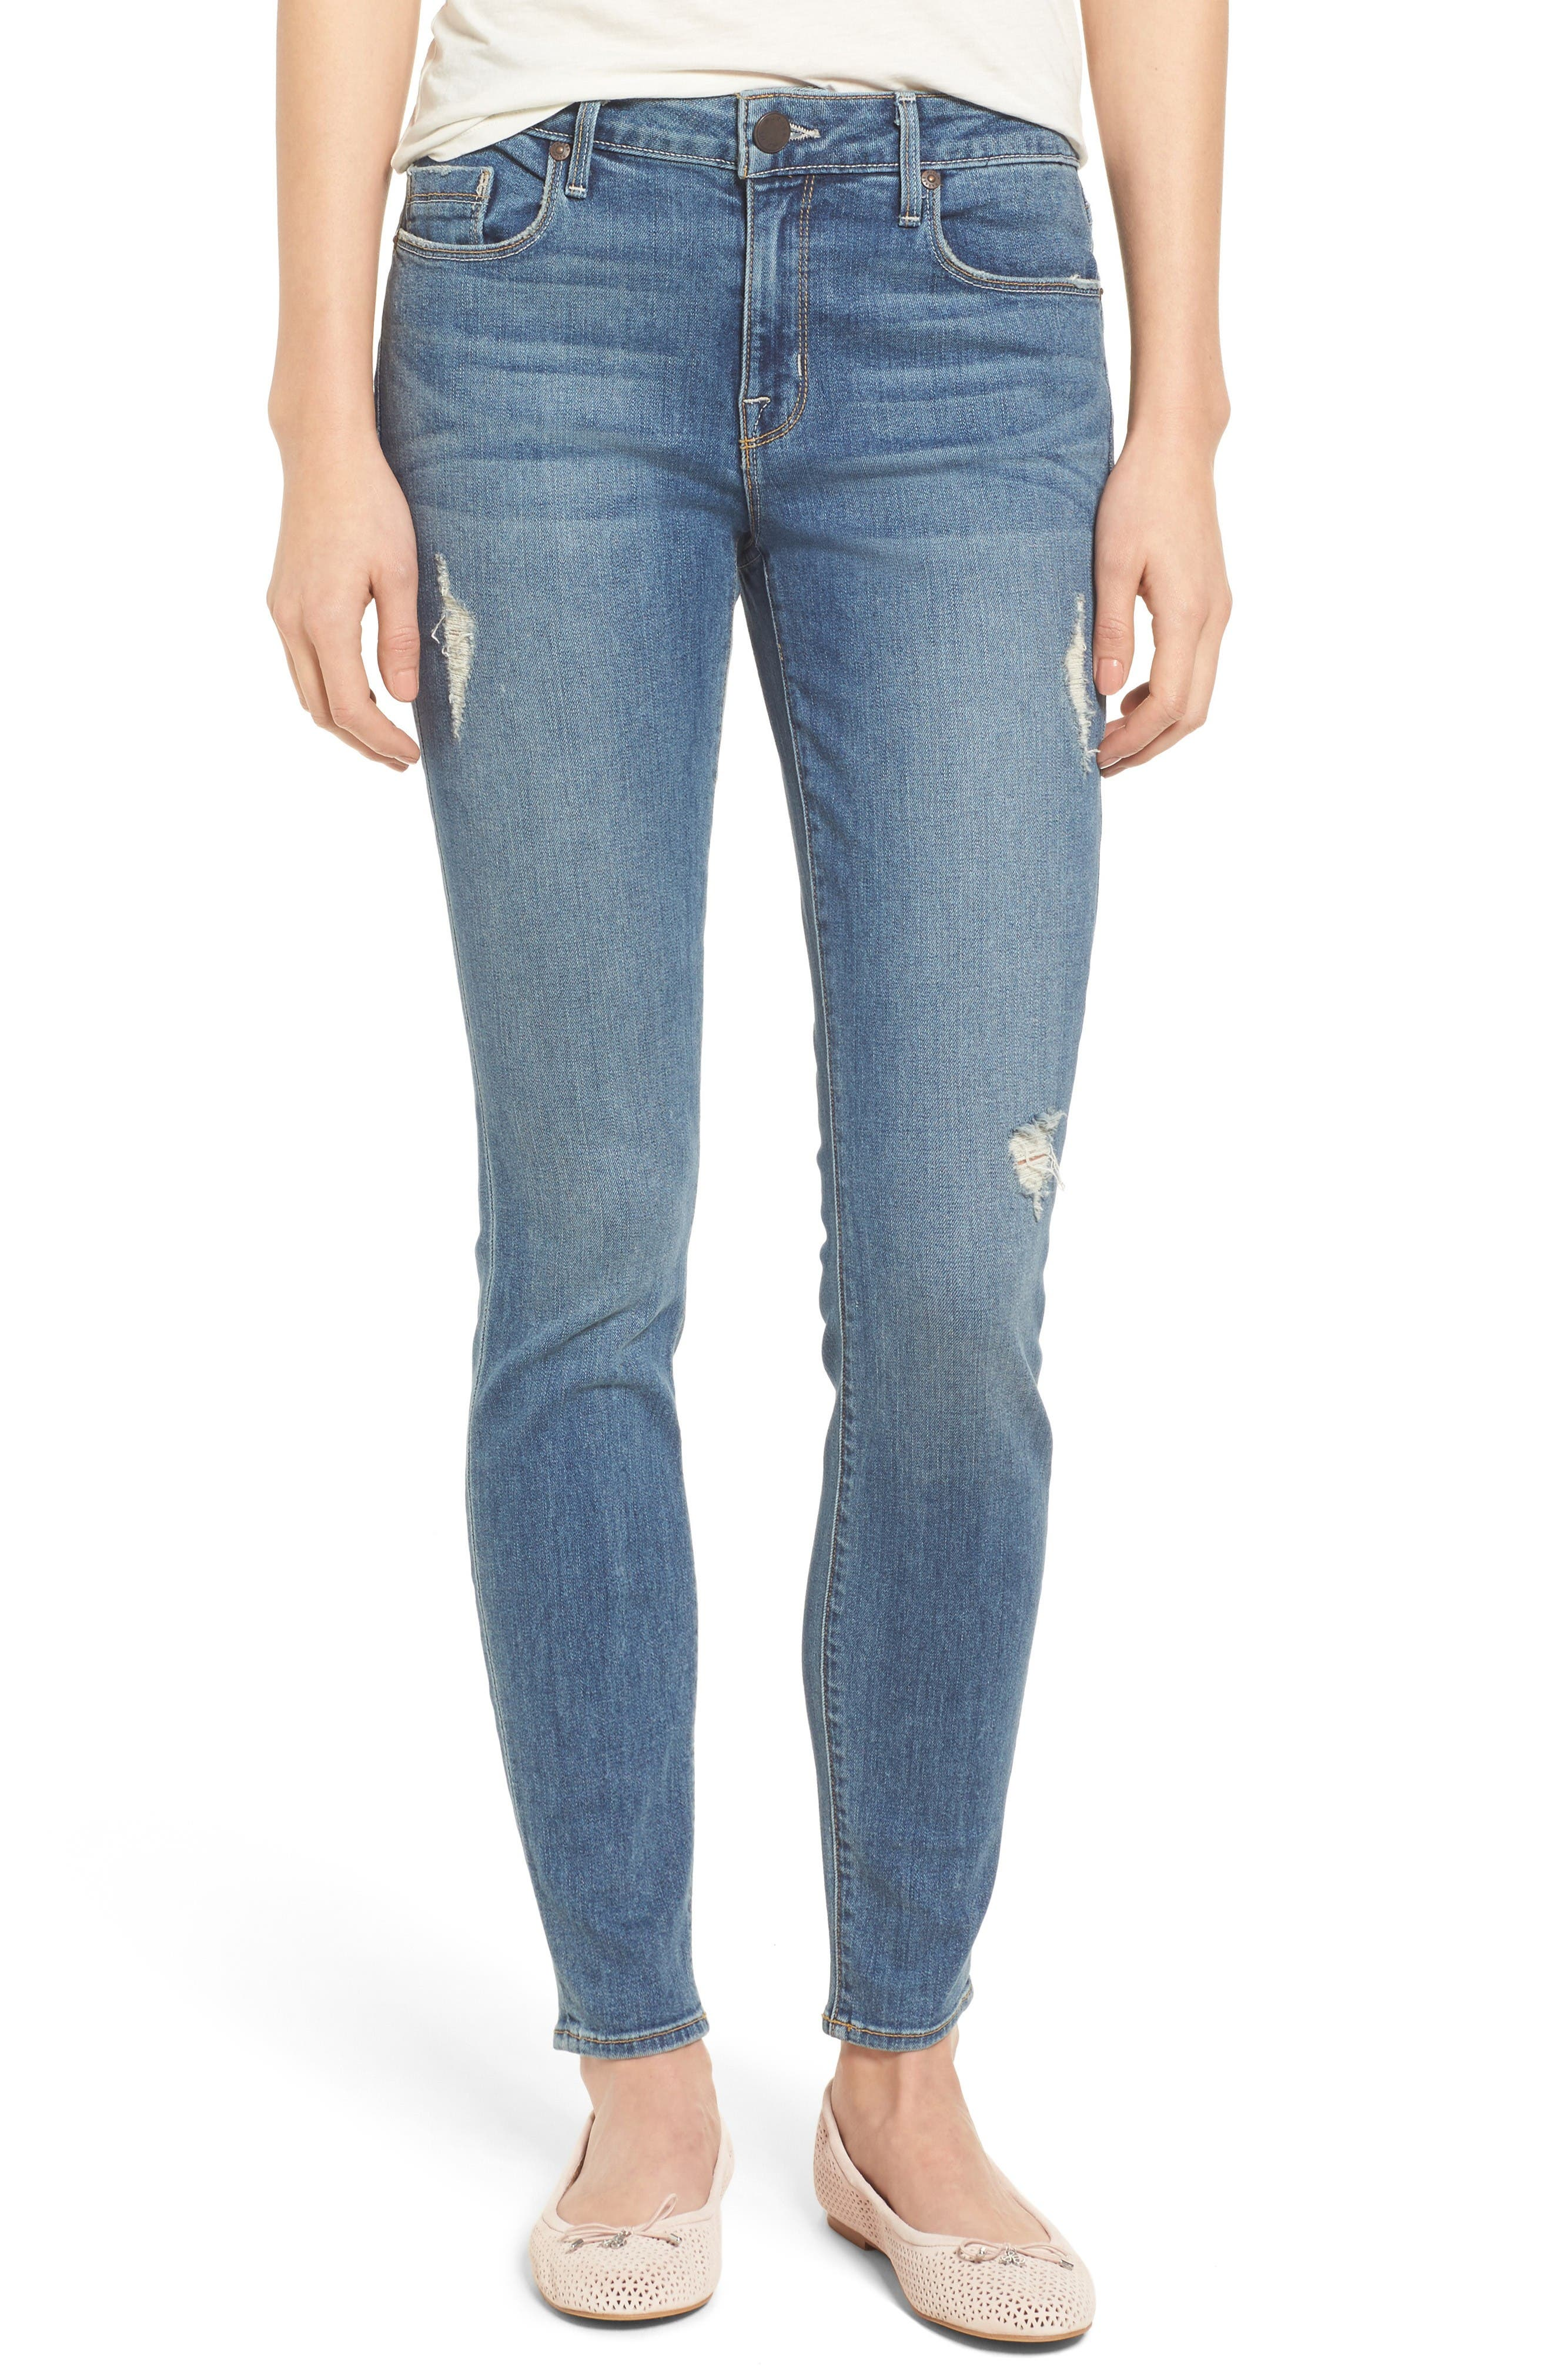 Alternate Image 1 Selected - PARKER SMITH Ava Stretch Skinny Jeans (Liverpool)